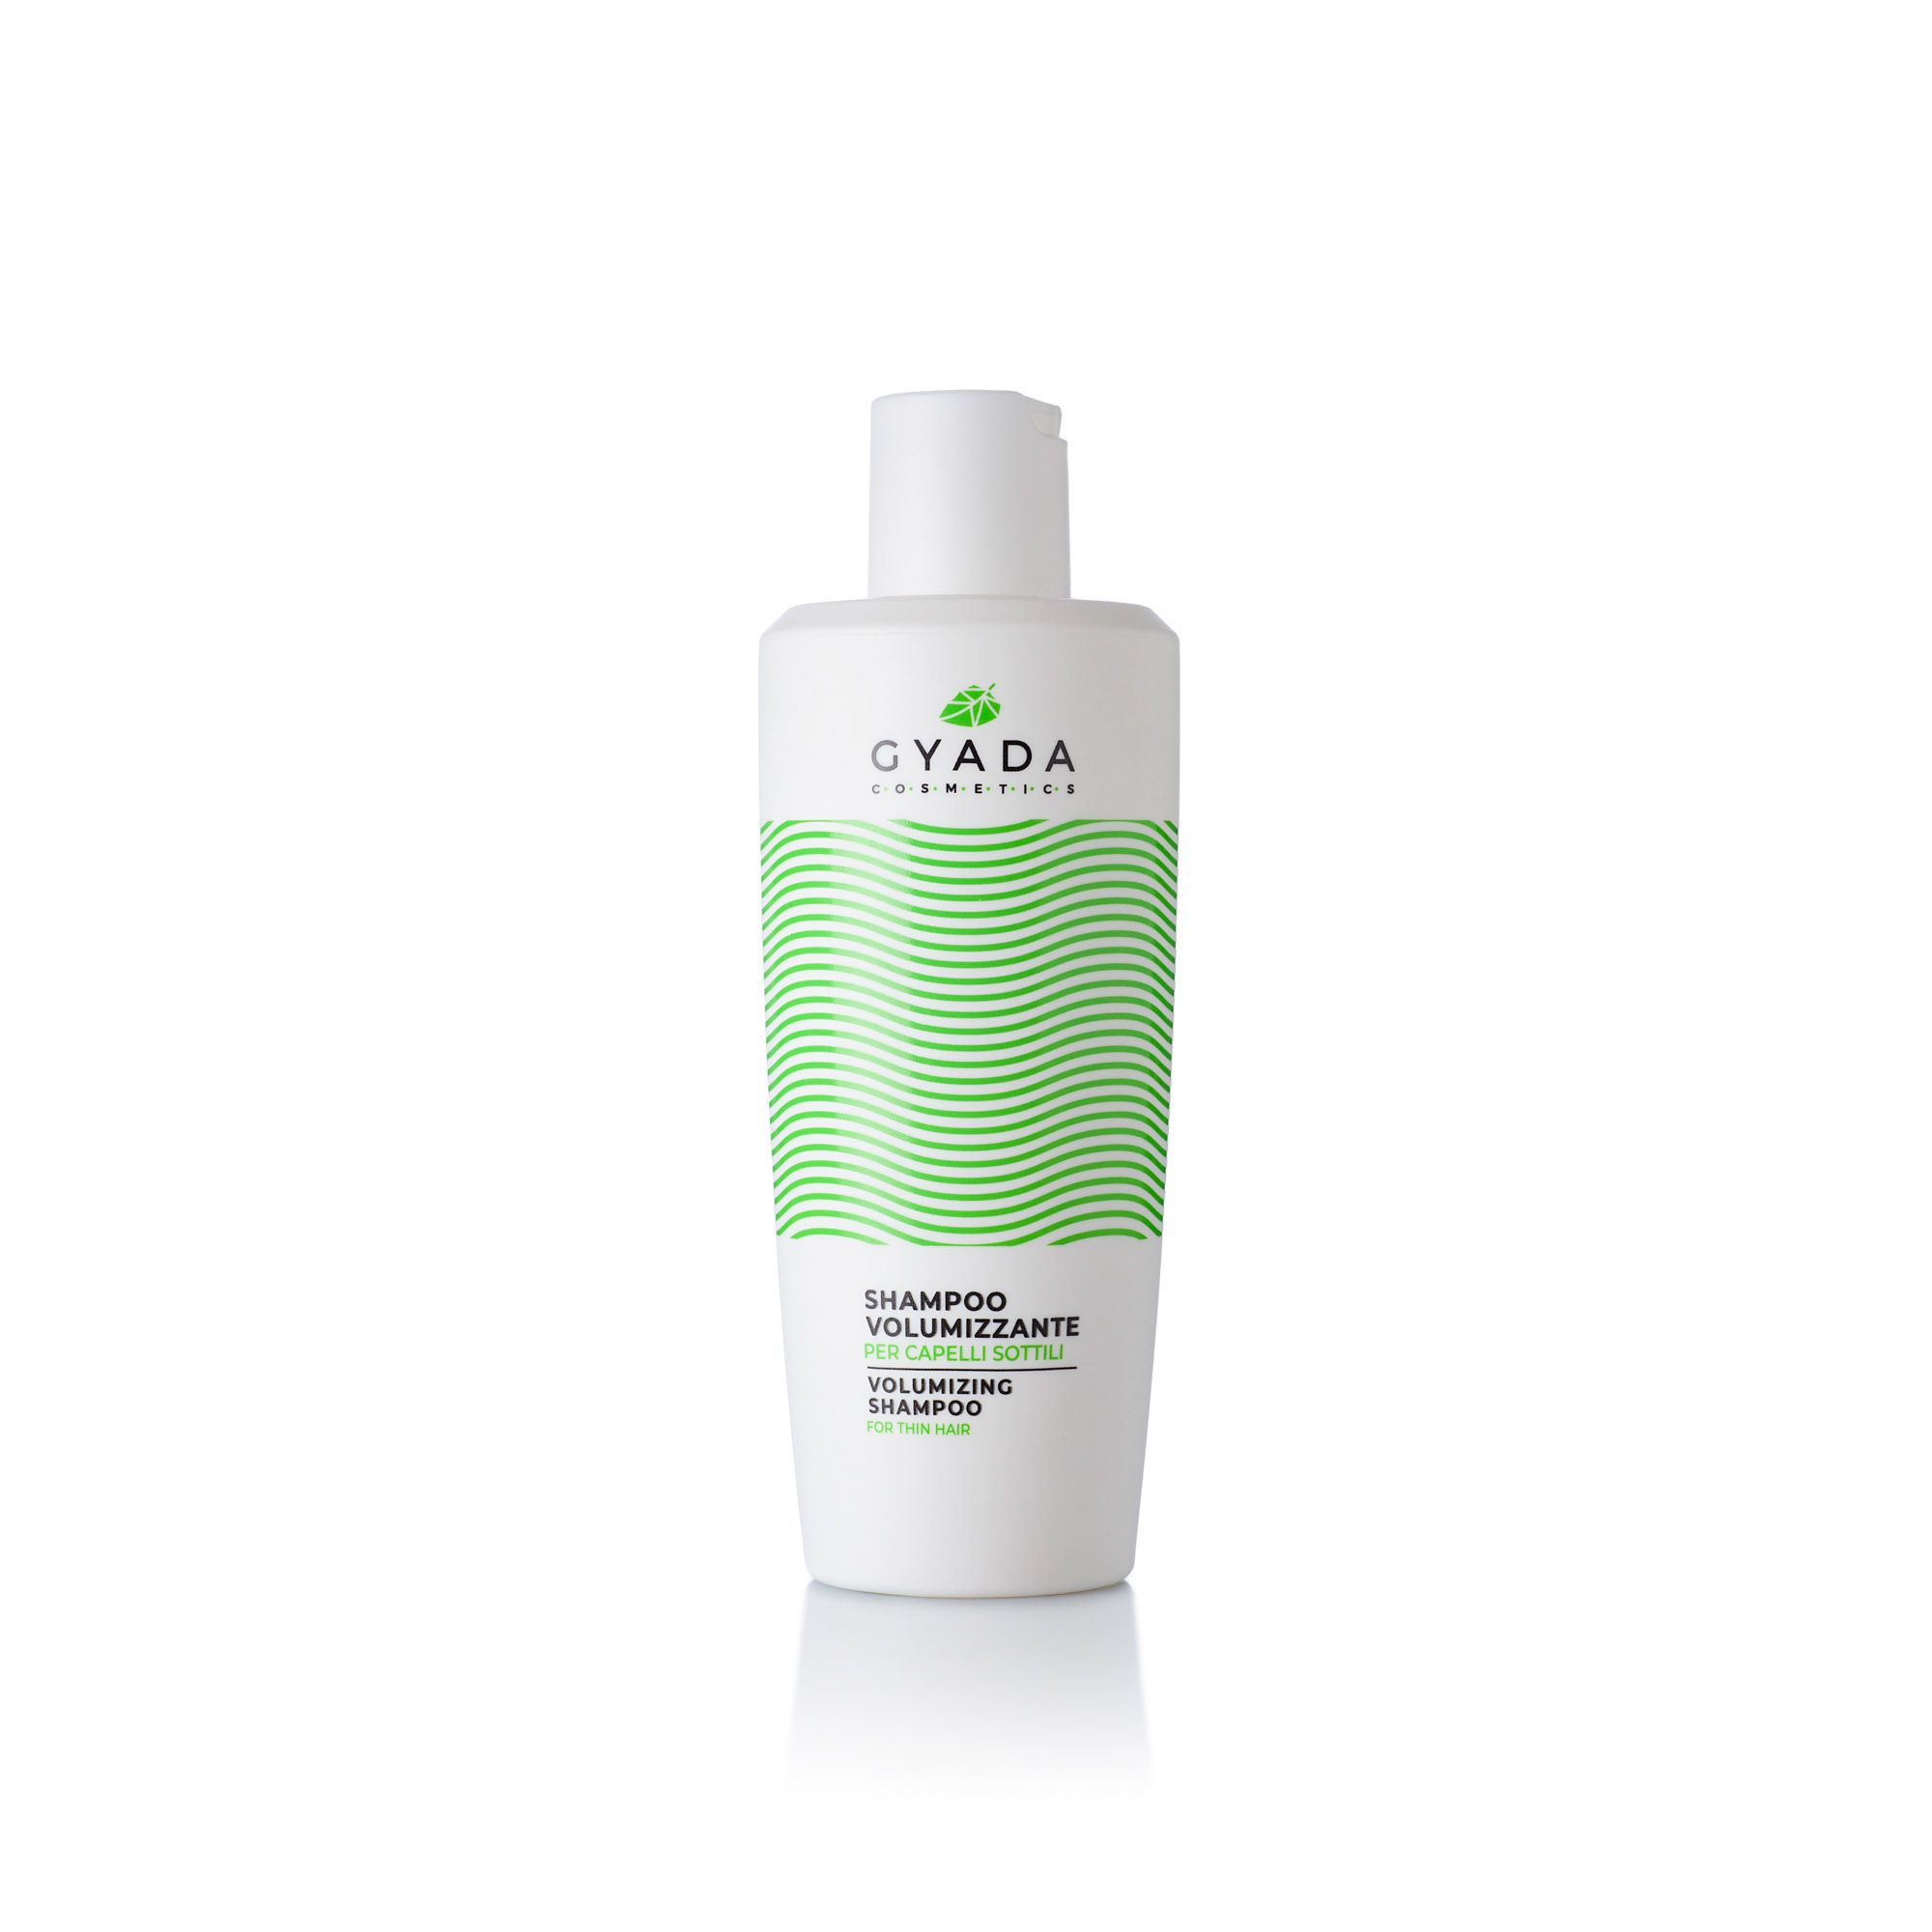 GYADA COSMETICS Shampoo Volumizzante 250ml